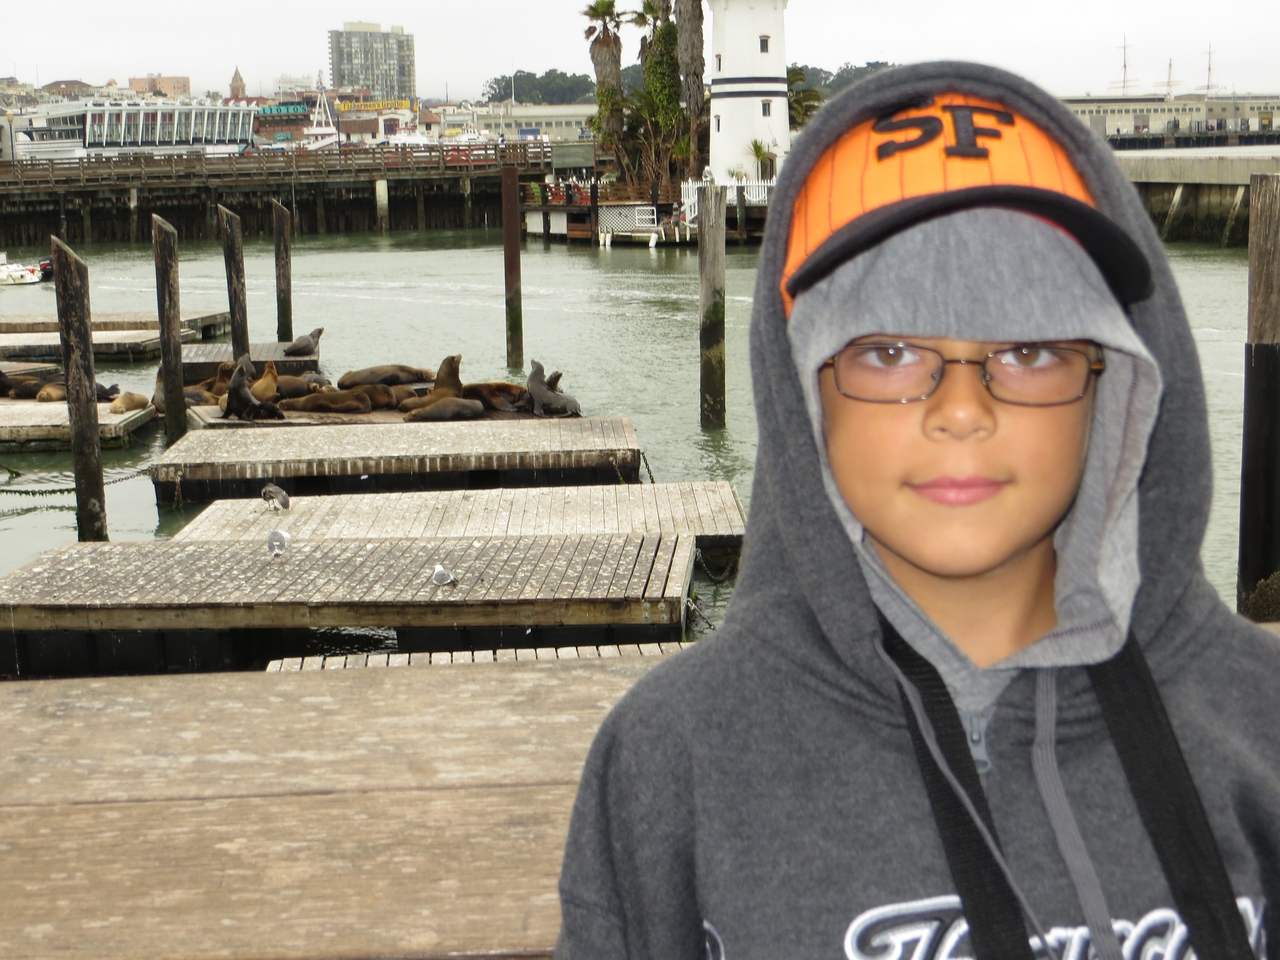 Austin near the sea lions at Pier 39 - it's cold!